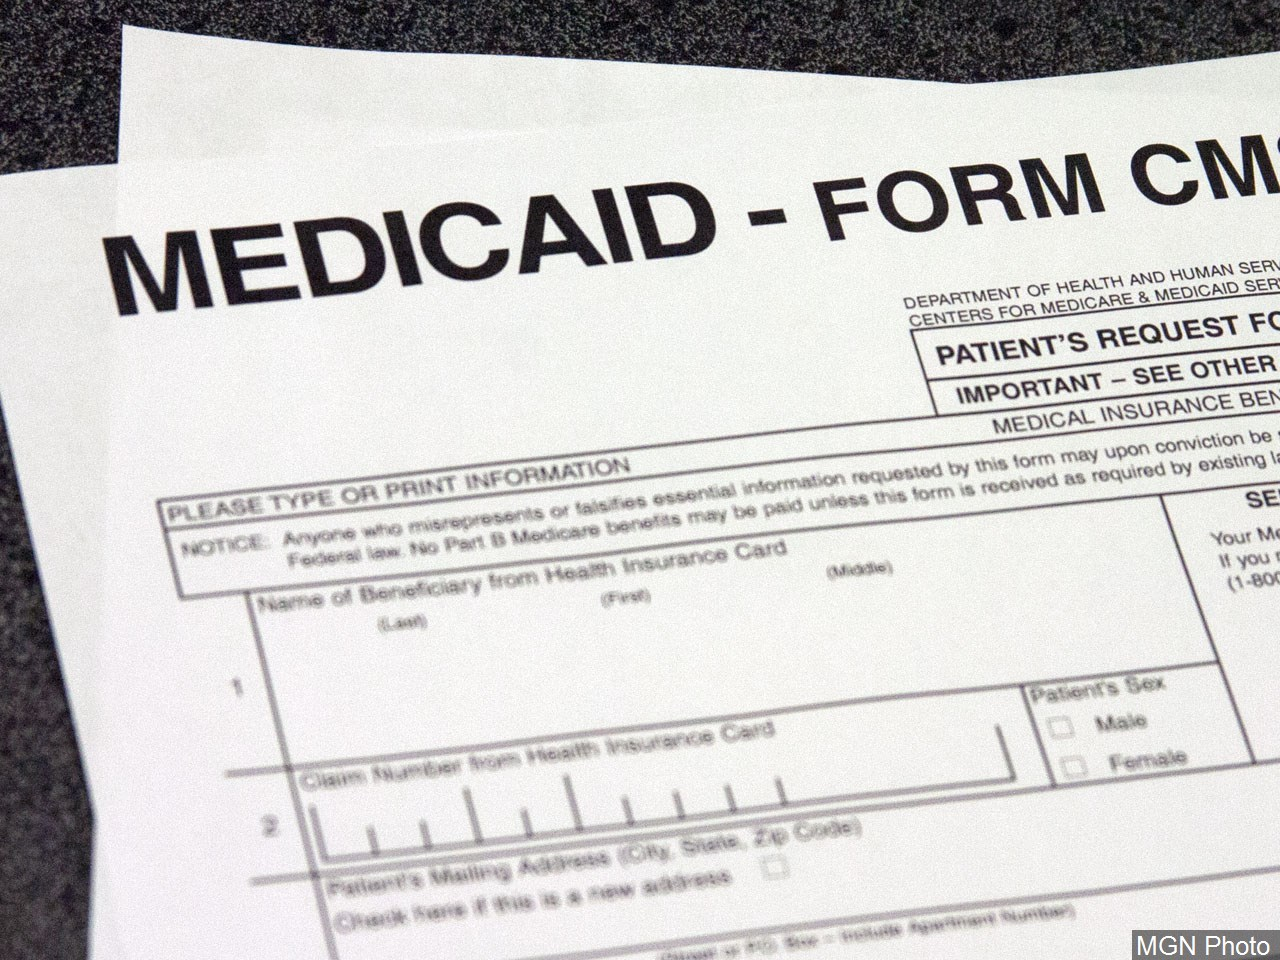 Arkansas Governor Now not Waiting for Medicaid Proposal Approval thumbnail